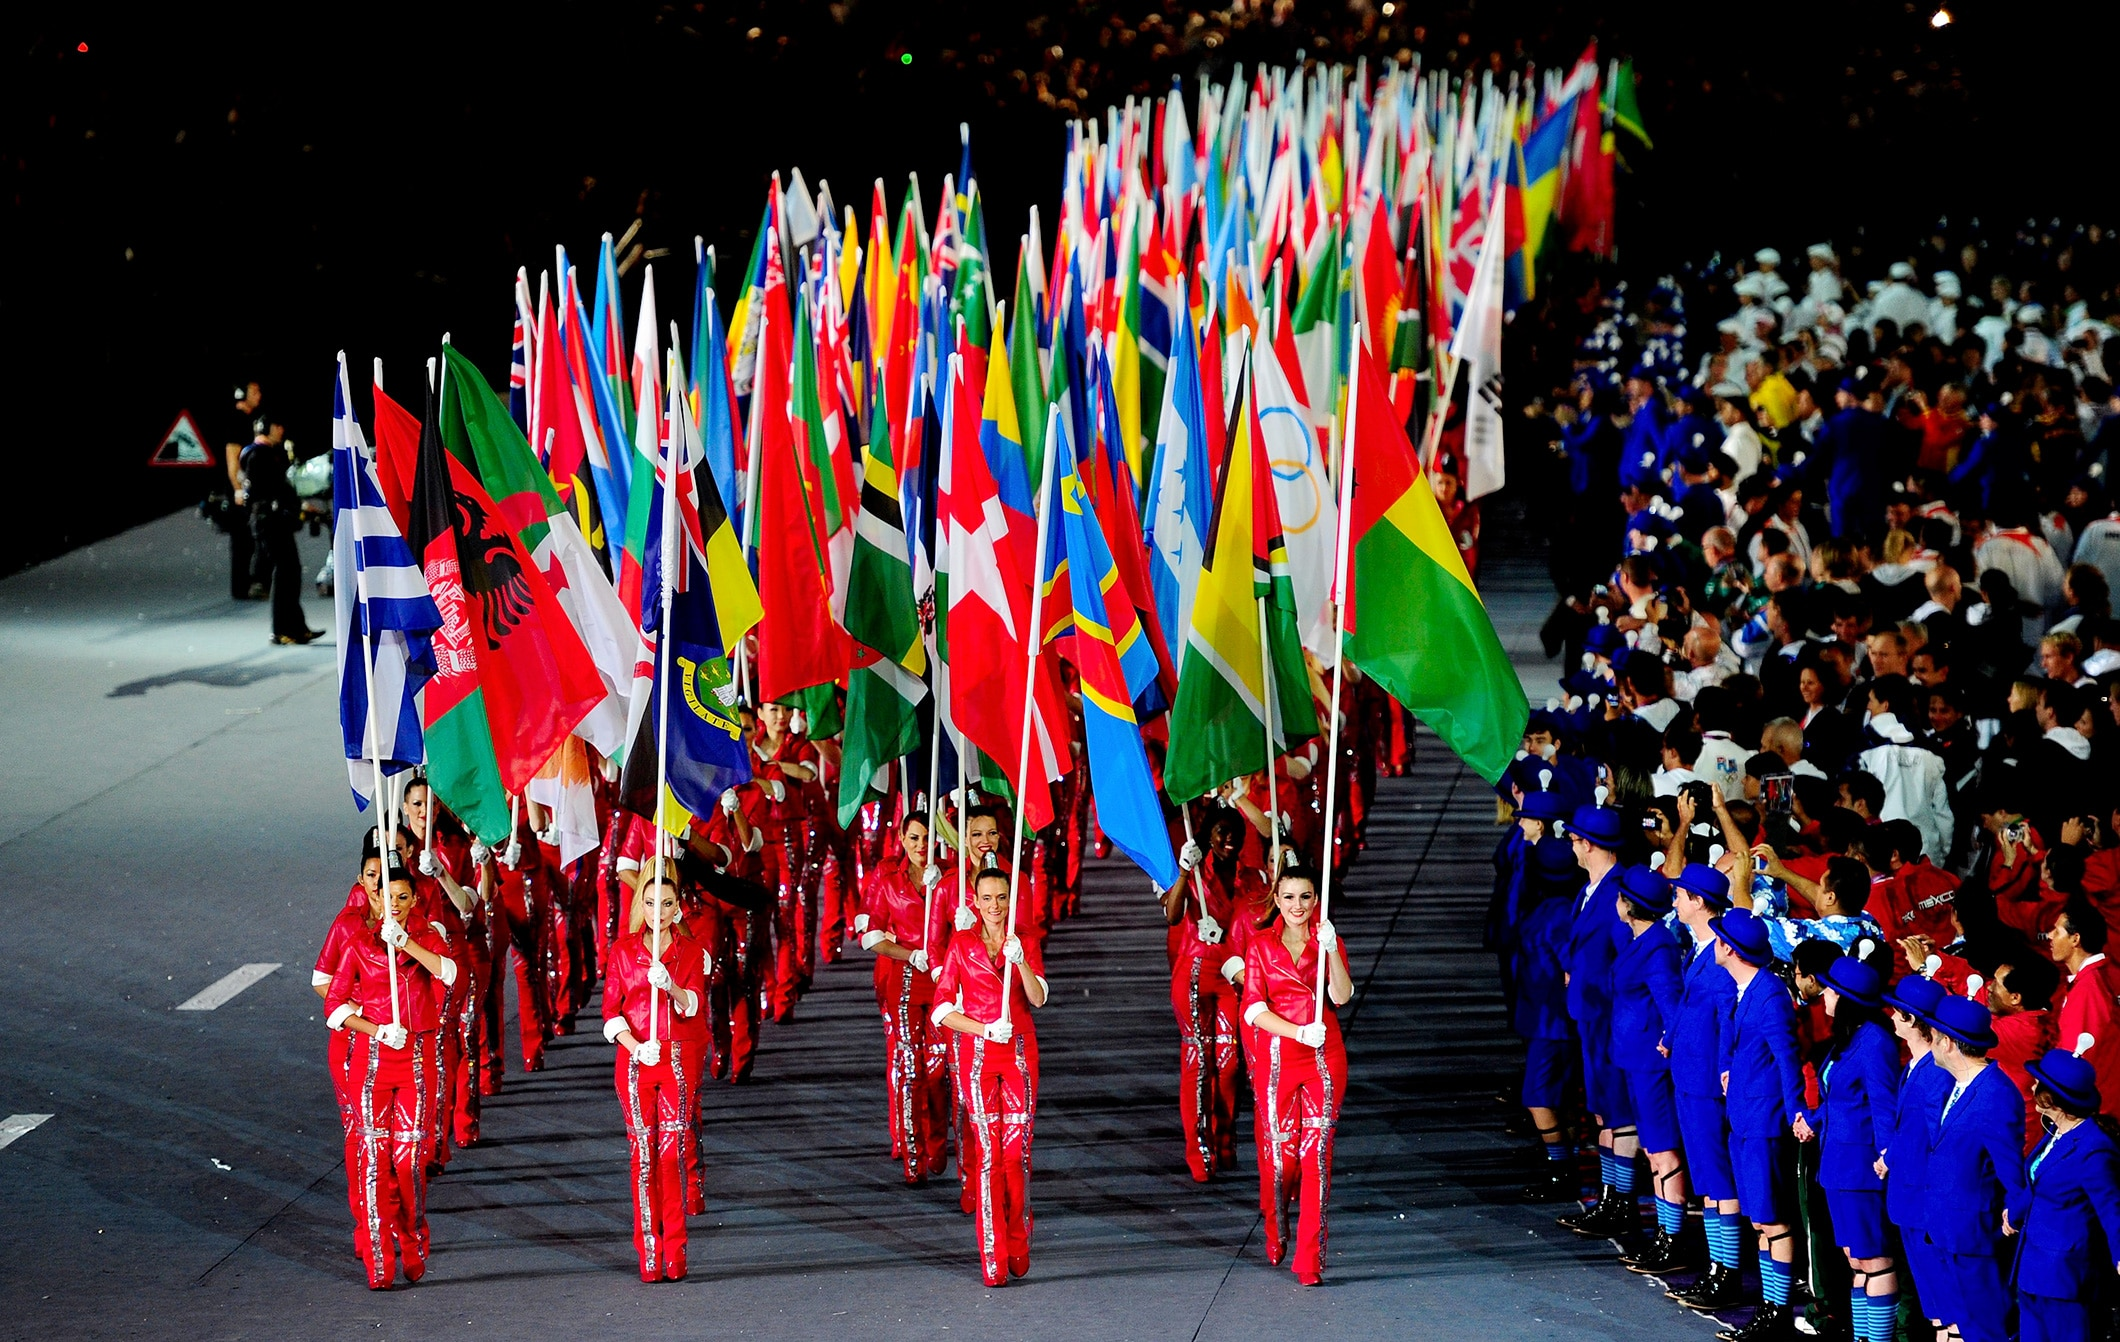 Flags of countries - London 2012